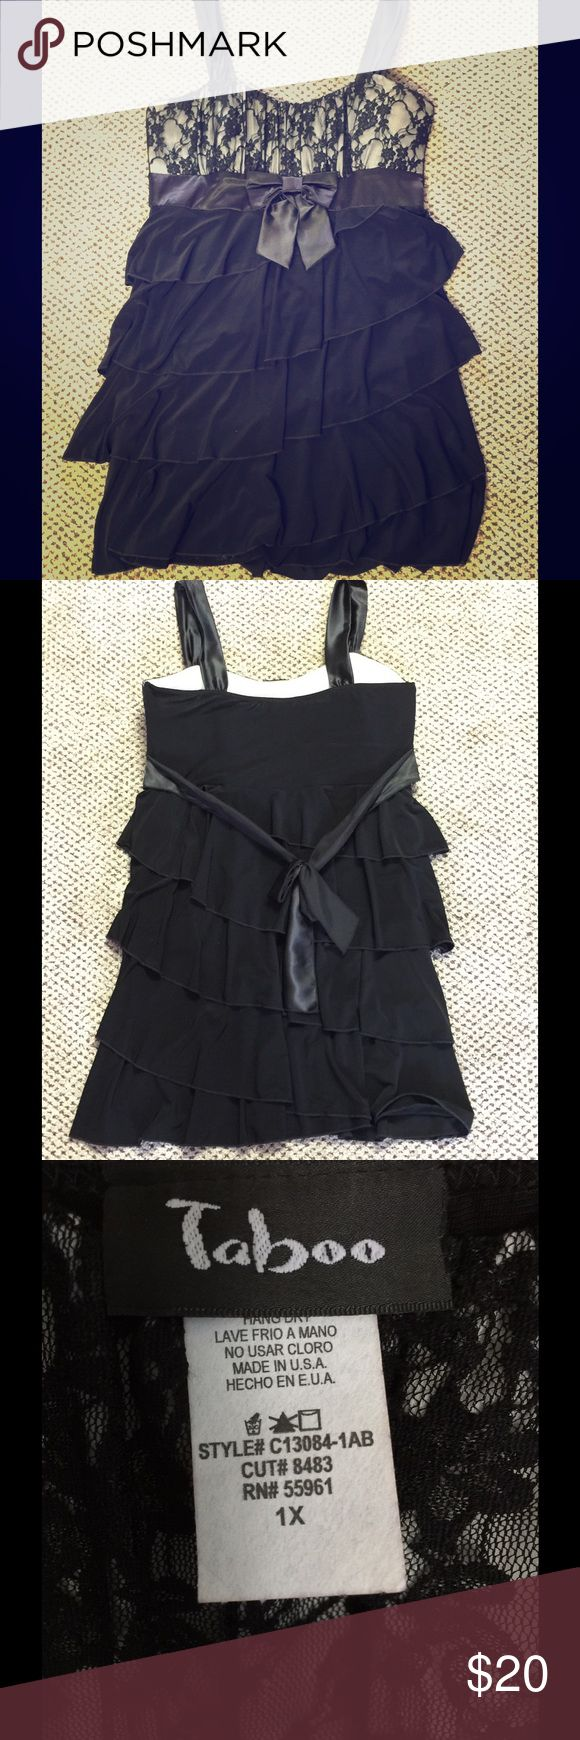 Black and white ruffle dress Taboo 1X women's black and white ruffle dress with lace detail and satin bow. Wore this dress one time. Taboo Dresses